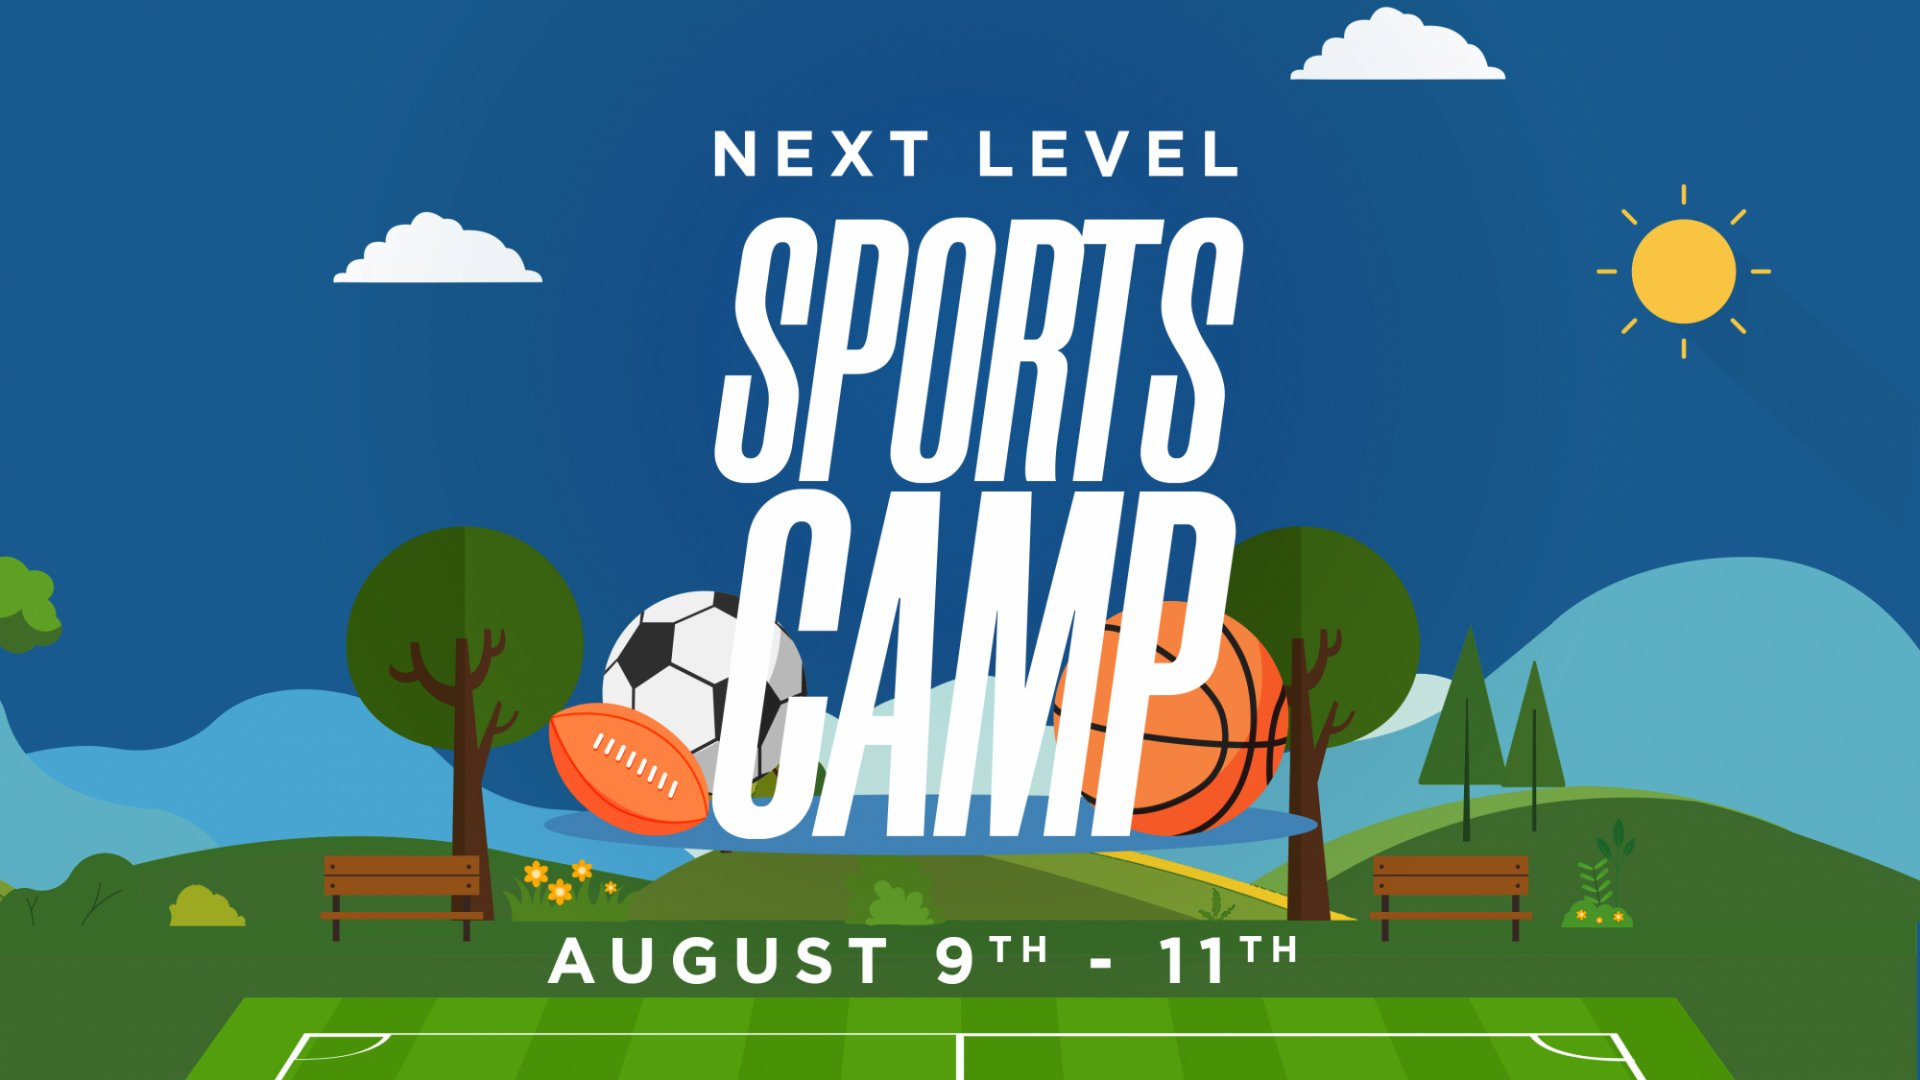 Poster for Next Level Sports Camp